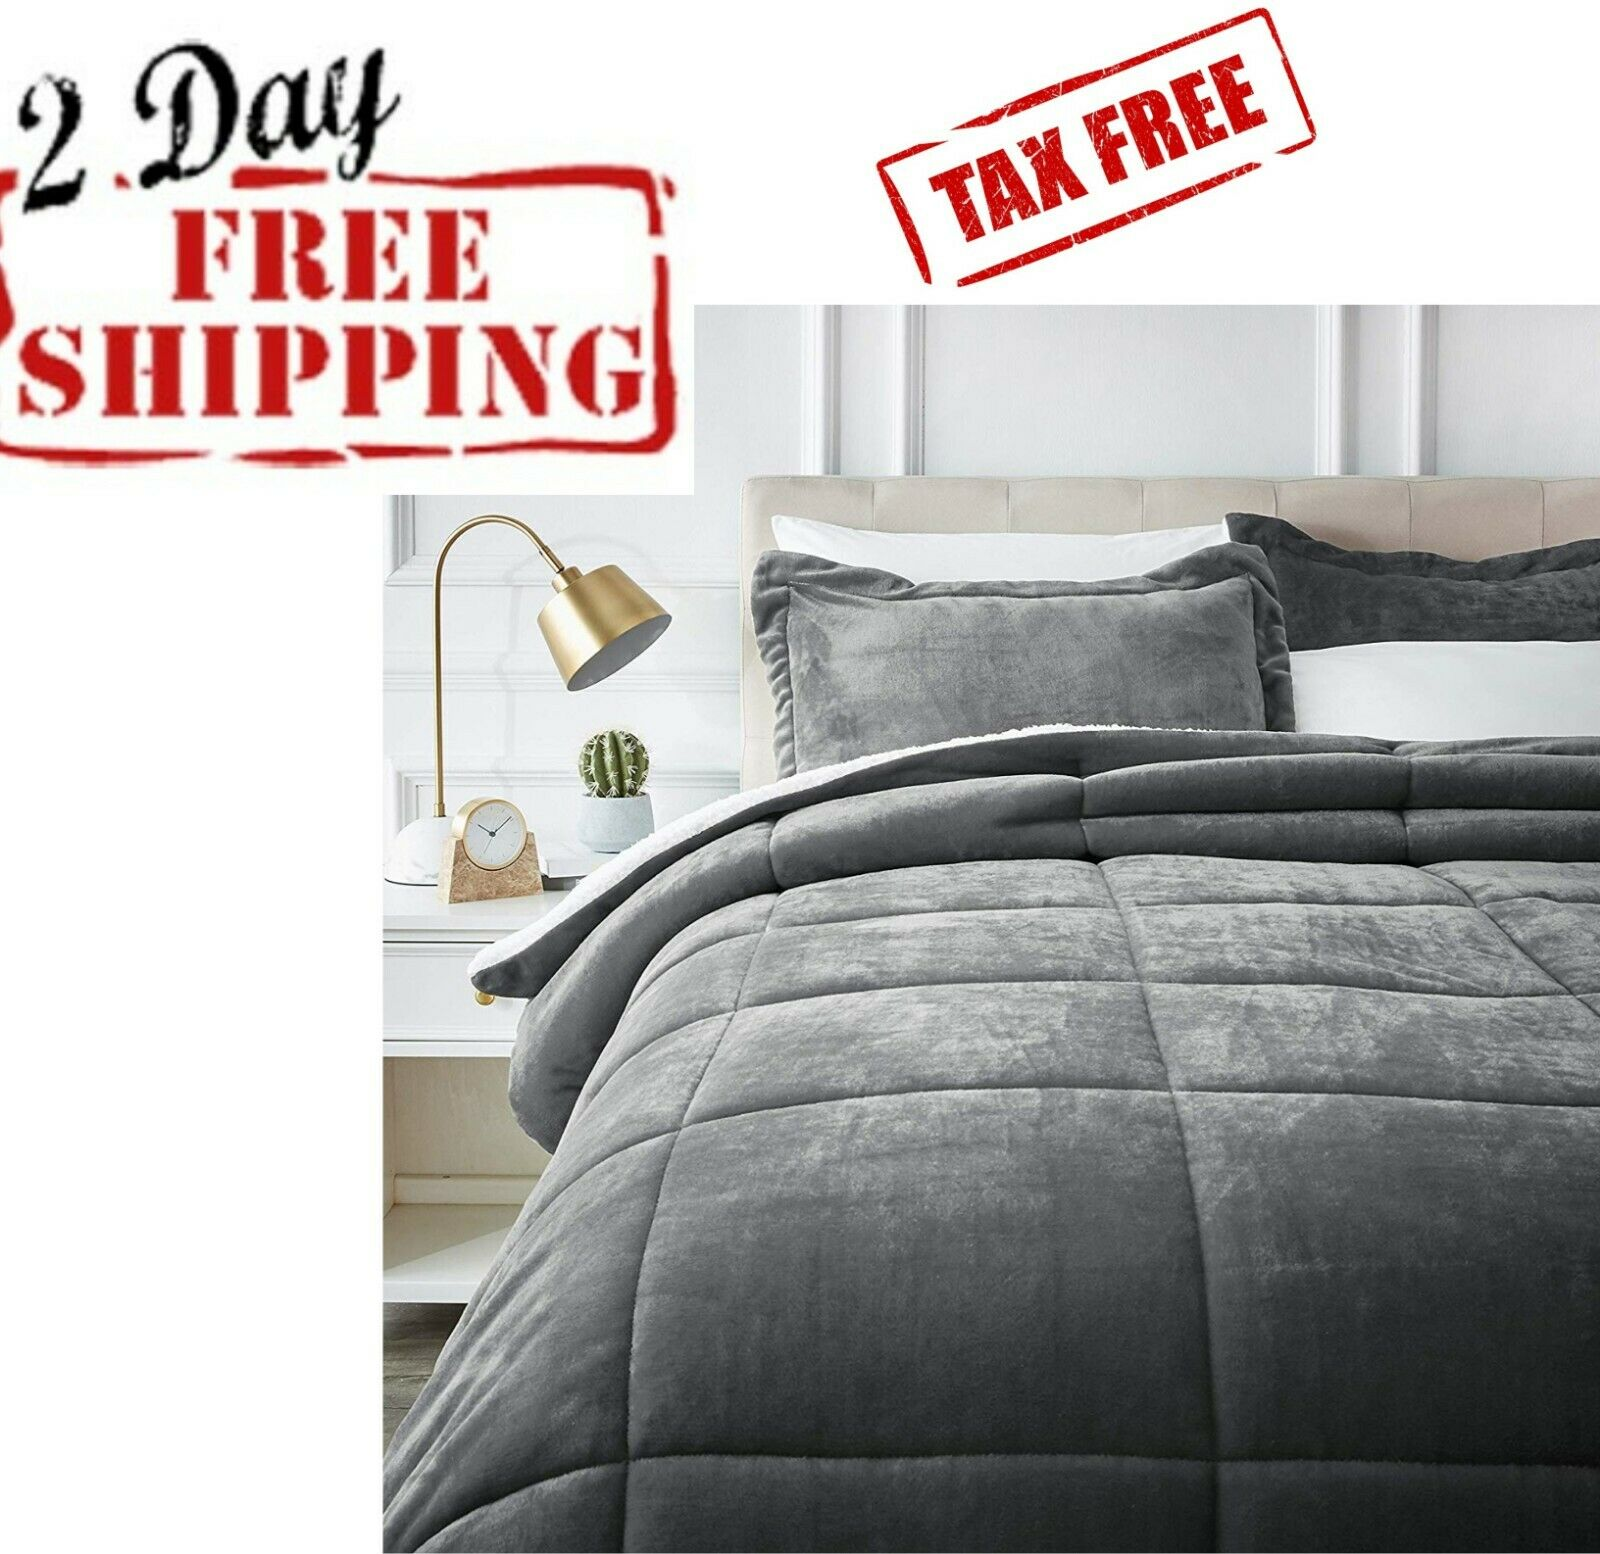 Bed Comforter Set Bedding Soft Shaggy Luxury Micromink Full/